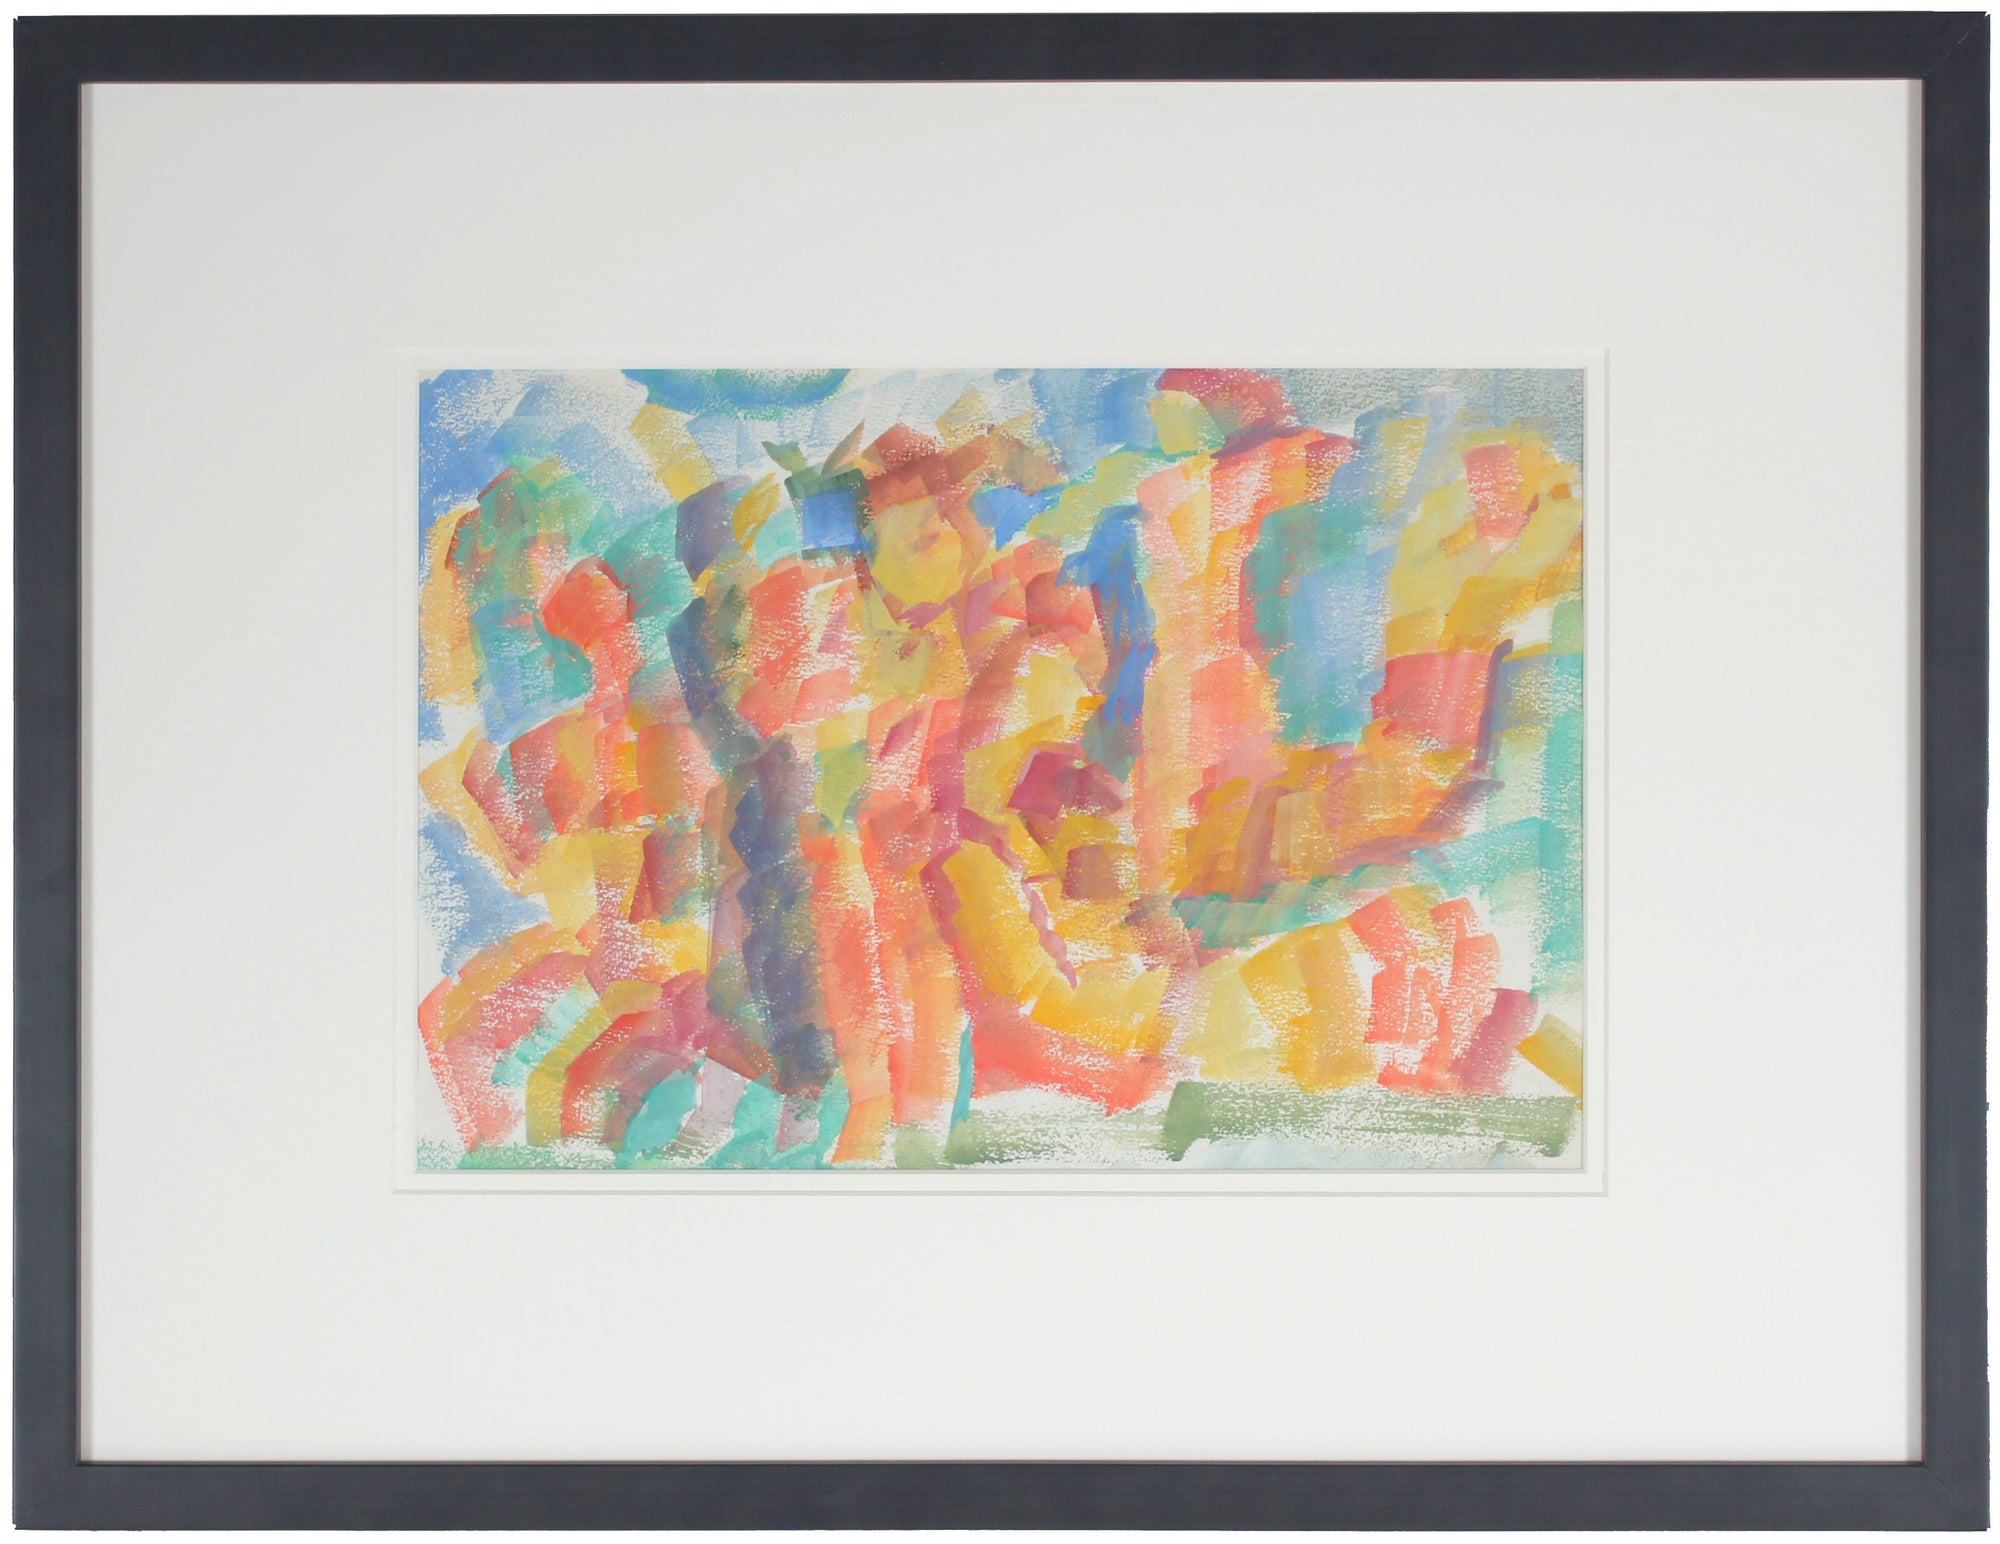 Colorful Expressionist Dancing Figures<br>Early-Mid 20th Century Watercolor<br><br>#13242